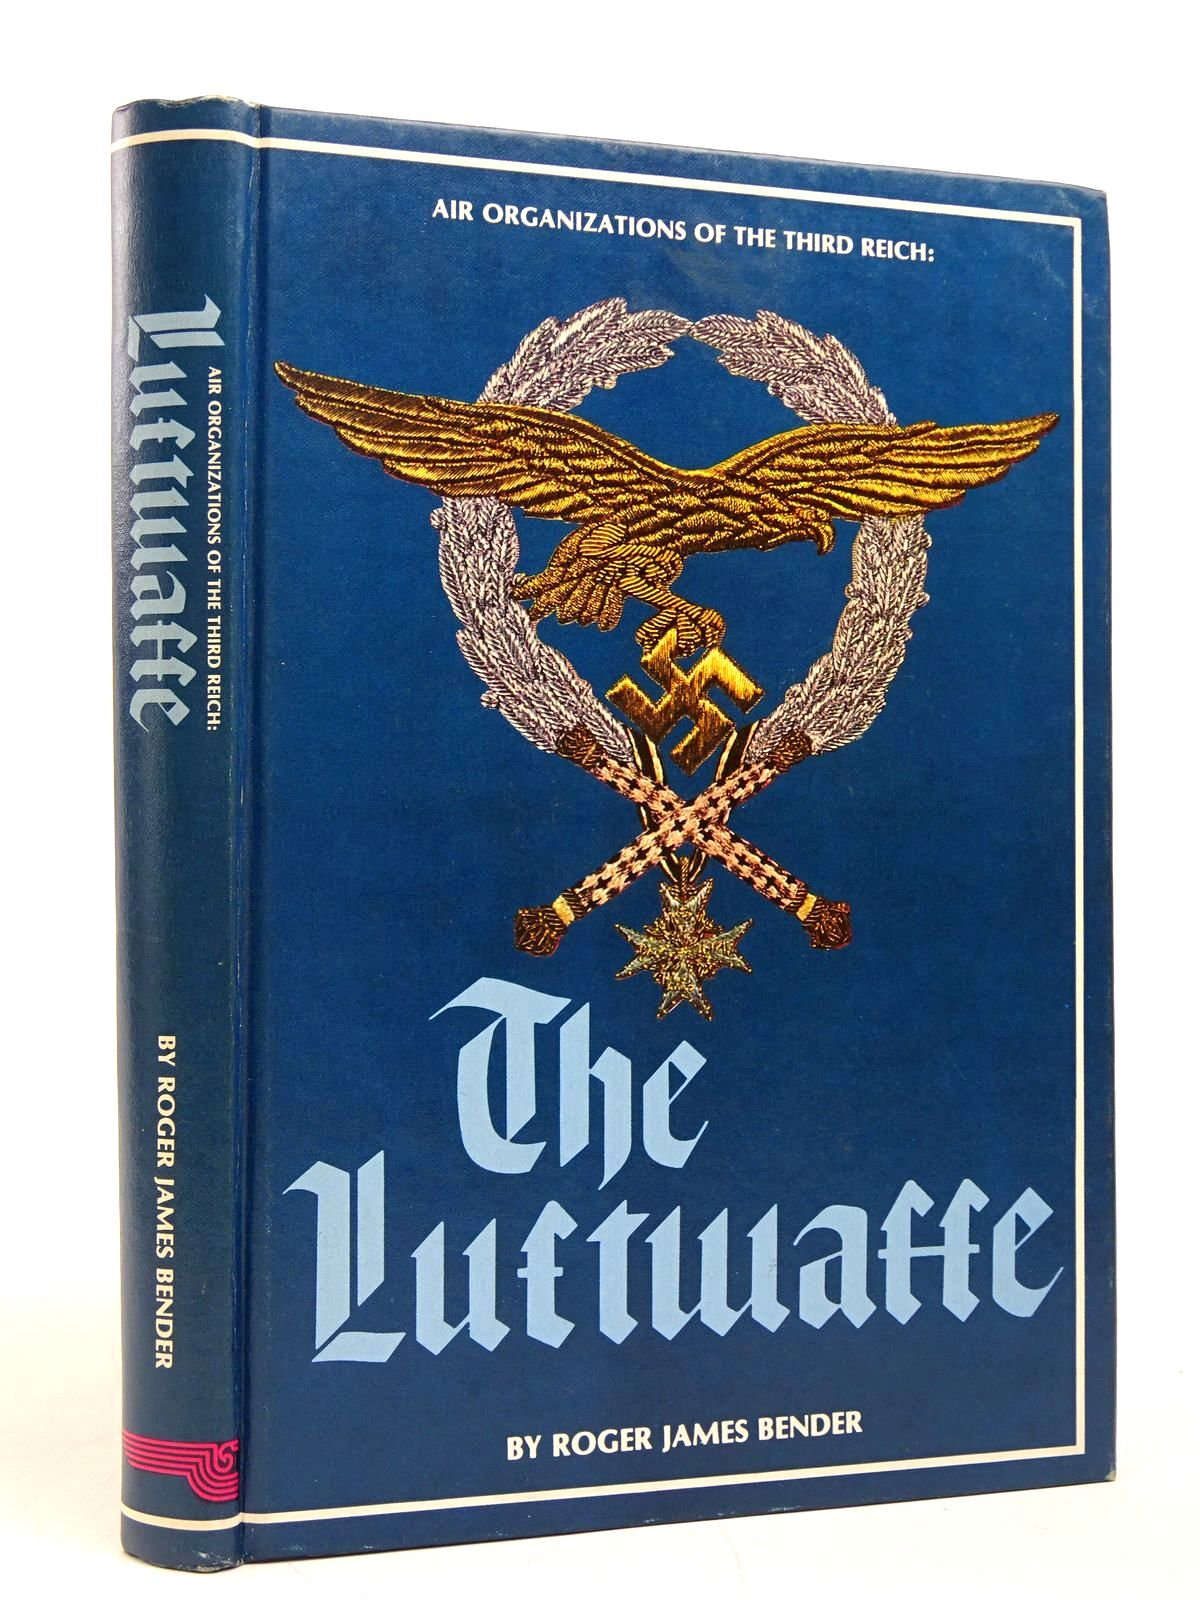 Photo of AIR ORGANIZATIONS OF THE THIRD REICH: THE LUFTWAFFE written by Bender, Roger James published by R. James Bender (STOCK CODE: 1817803)  for sale by Stella & Rose's Books